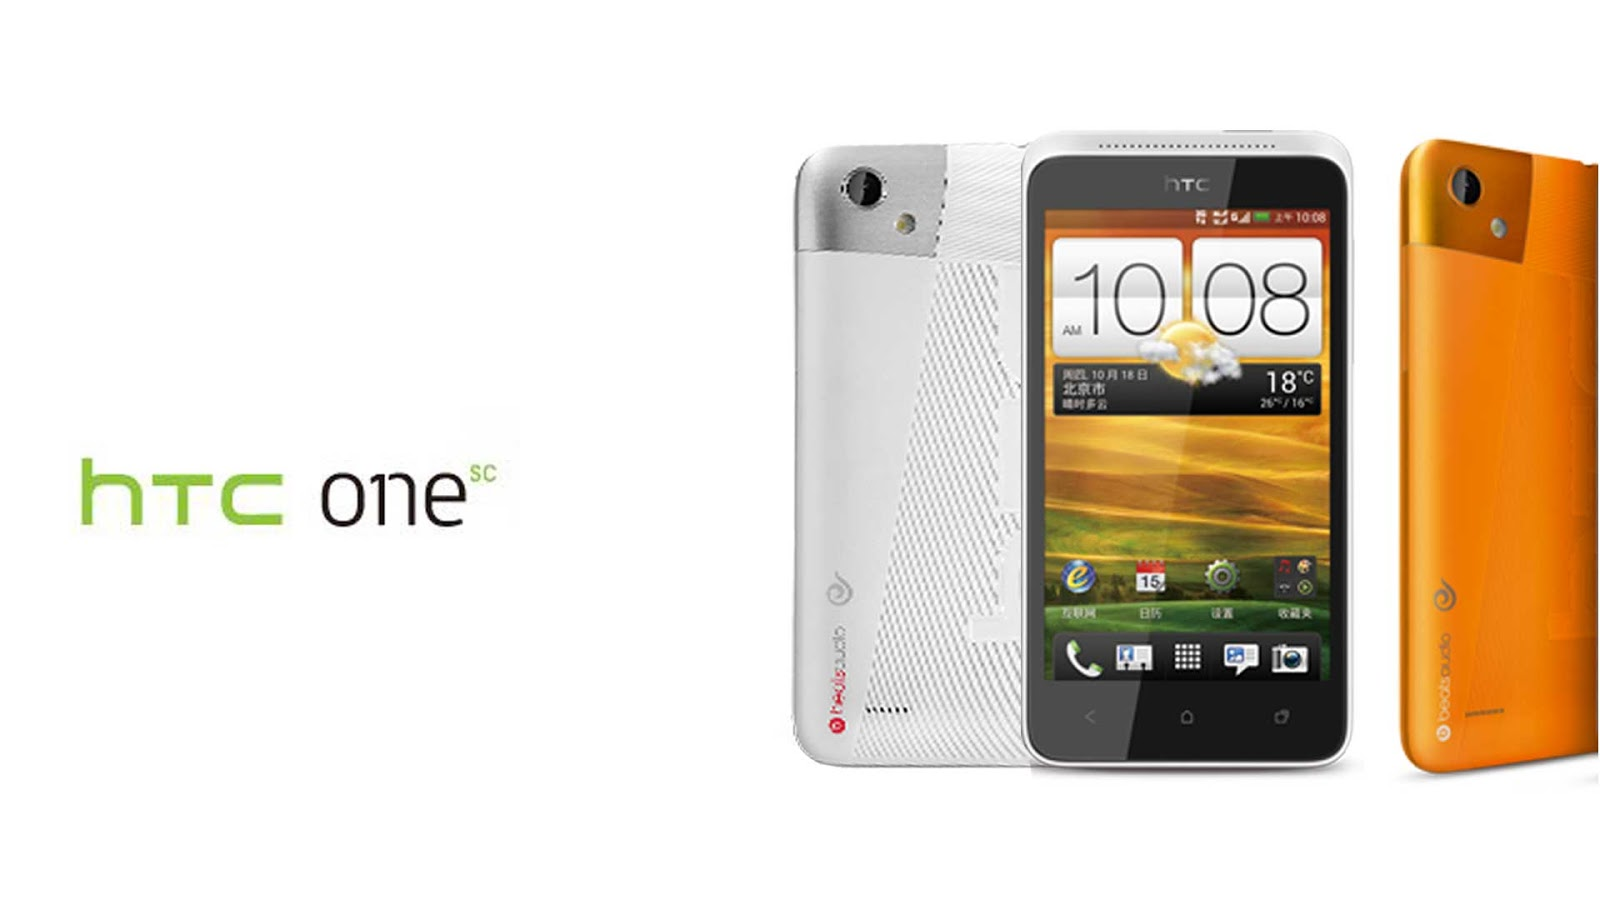 new-htc-one-sc-photo-white-black-orange-1-.jpg